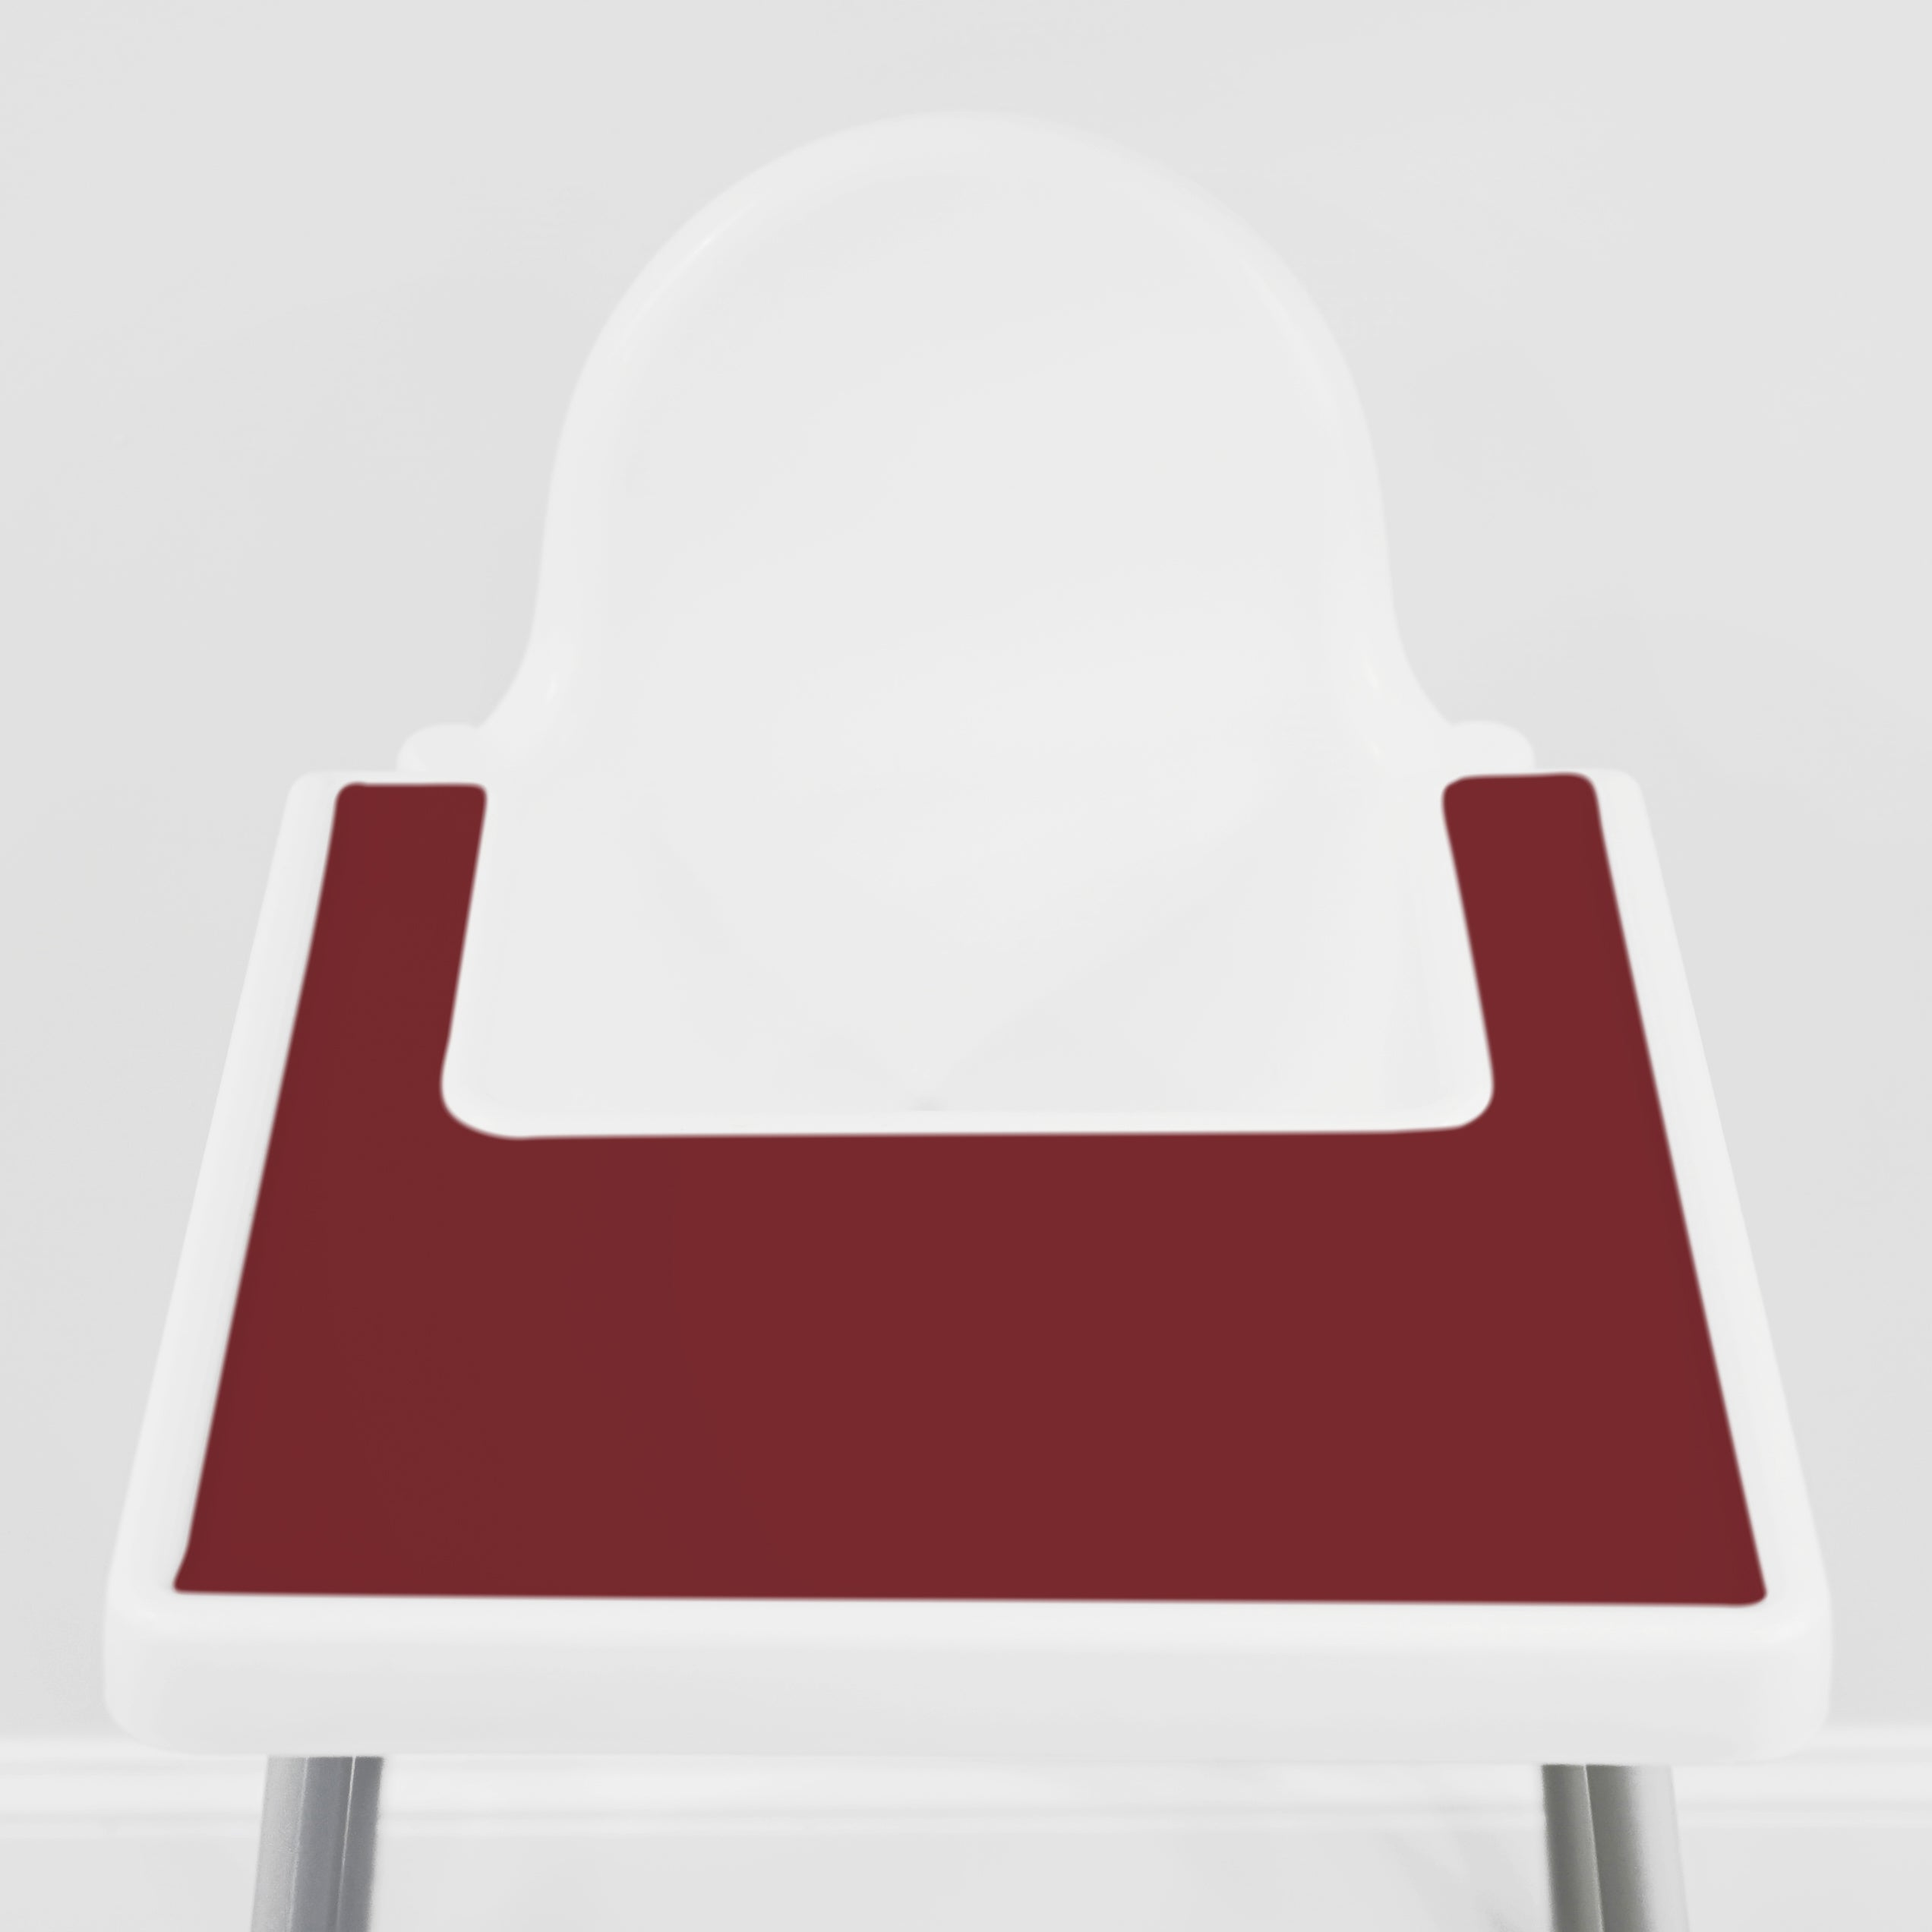 Limited Edition Rustic Red IKEA Highchair Placemat